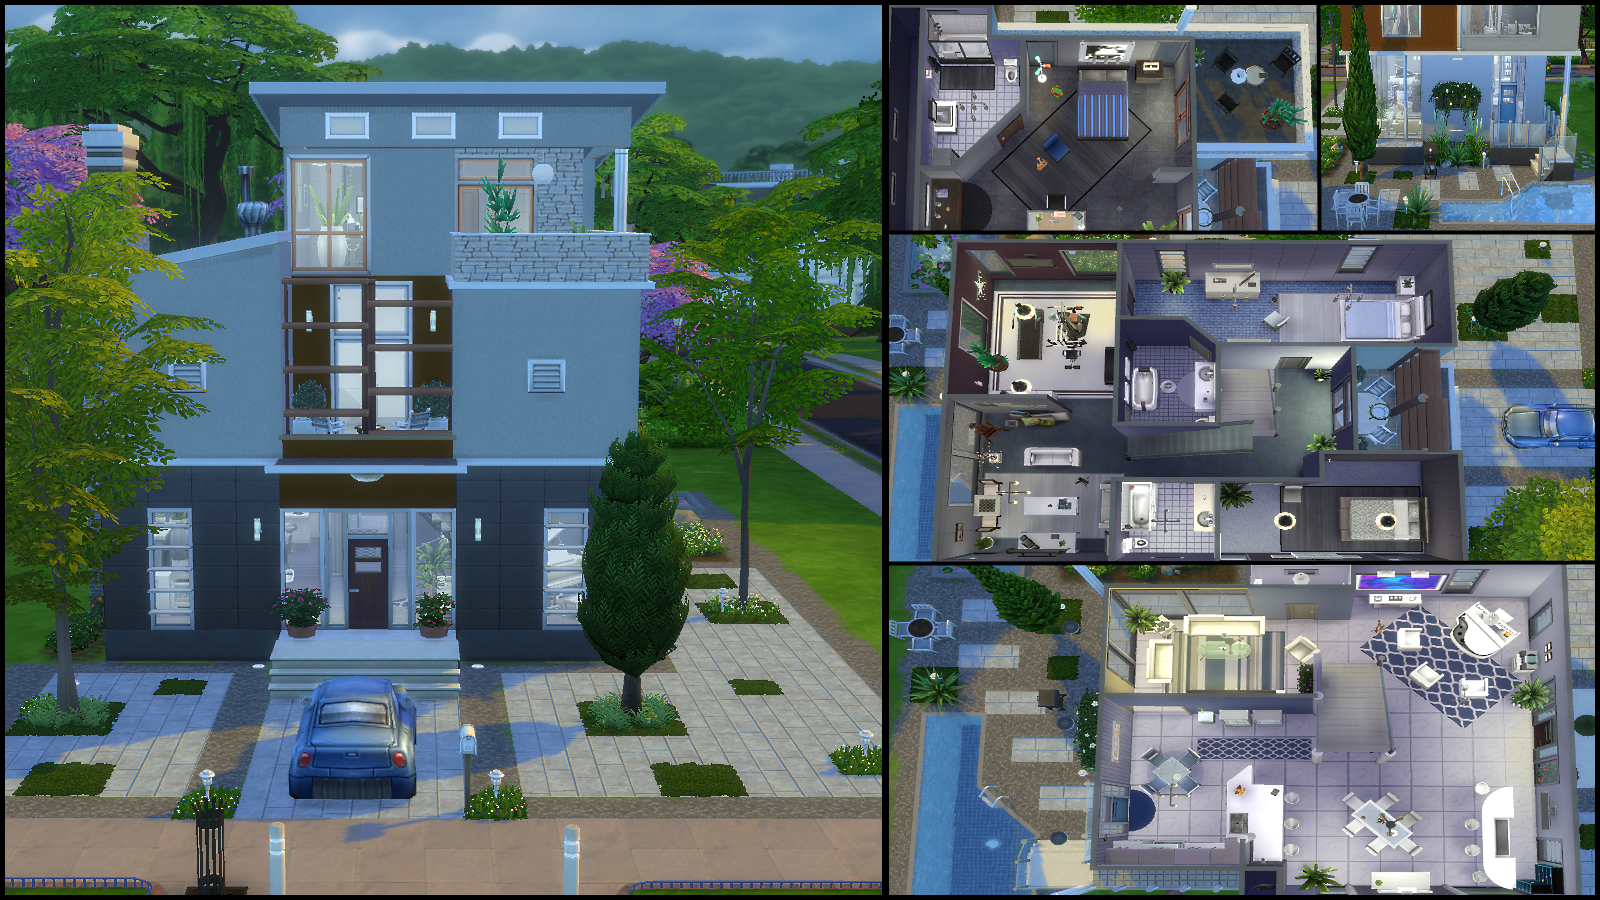 The Sims 4 Gallery Spotlight 12 on Rustic Living Room And Kitchen Open Floor Plan